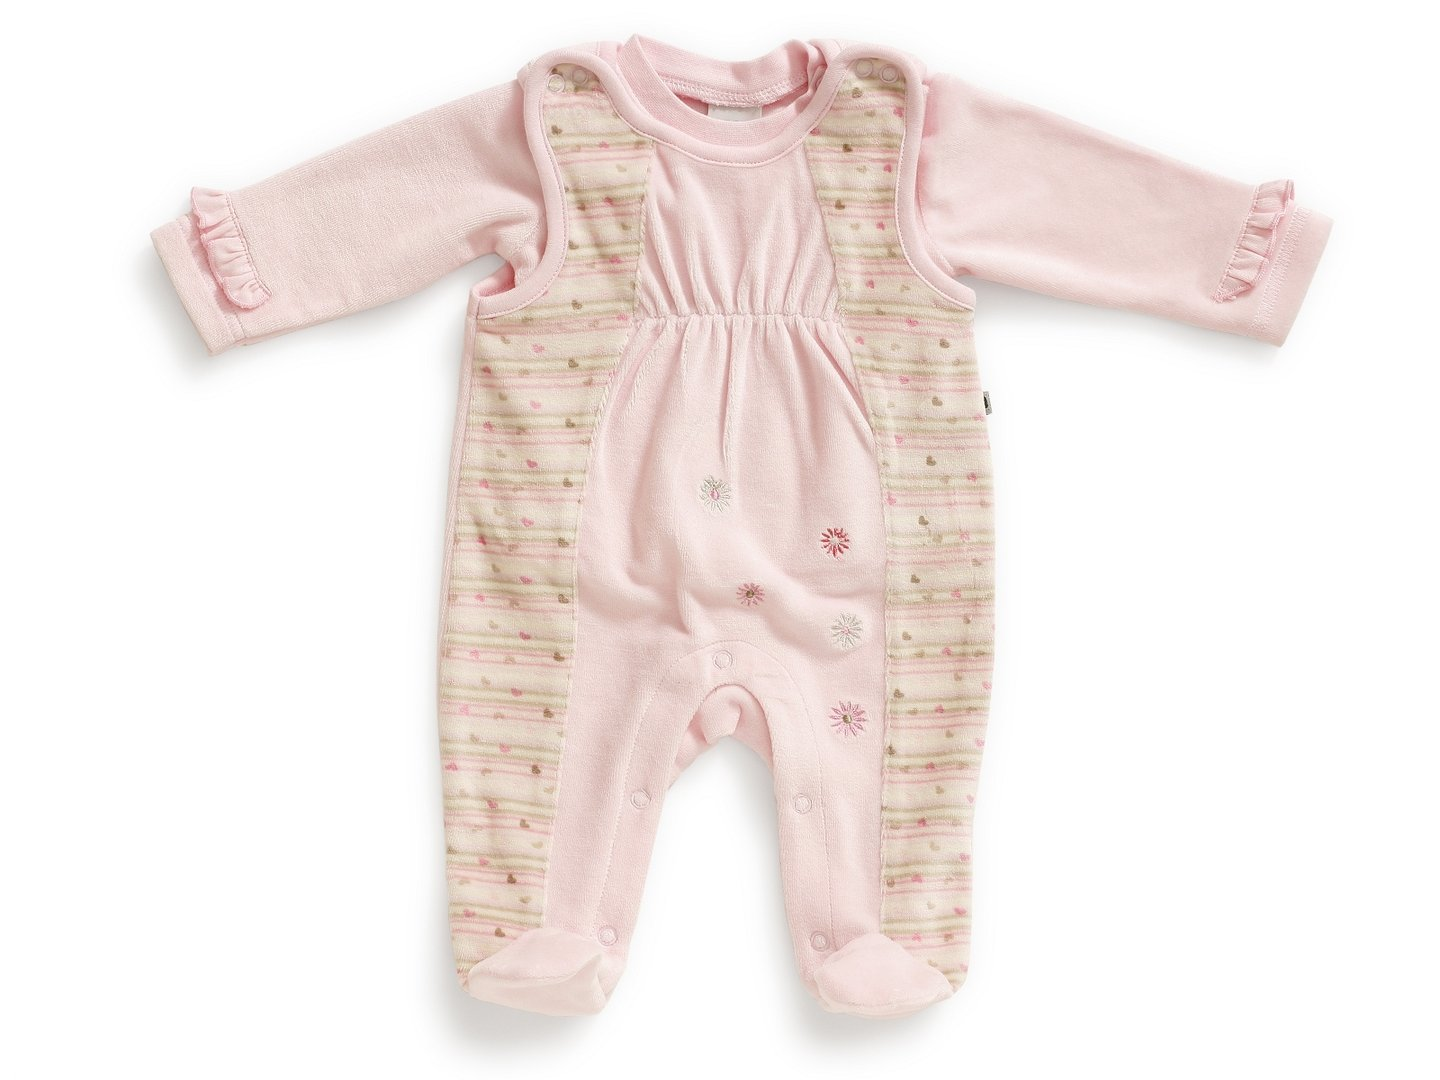 Baby Nicki-Strampler-Set Mini Princess